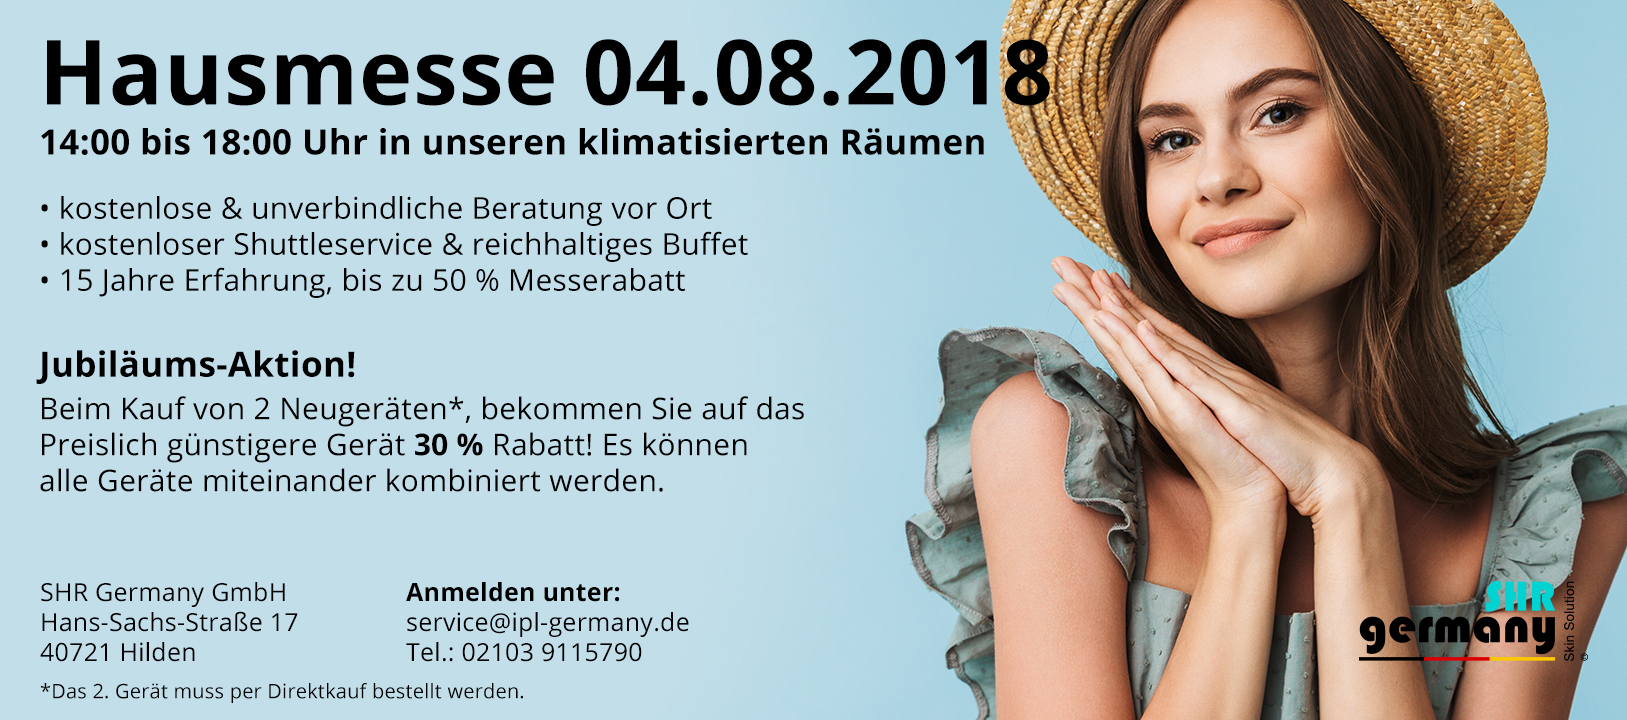 SHR_ipl_FLYER_HAUSMESSE_GERMANY_22